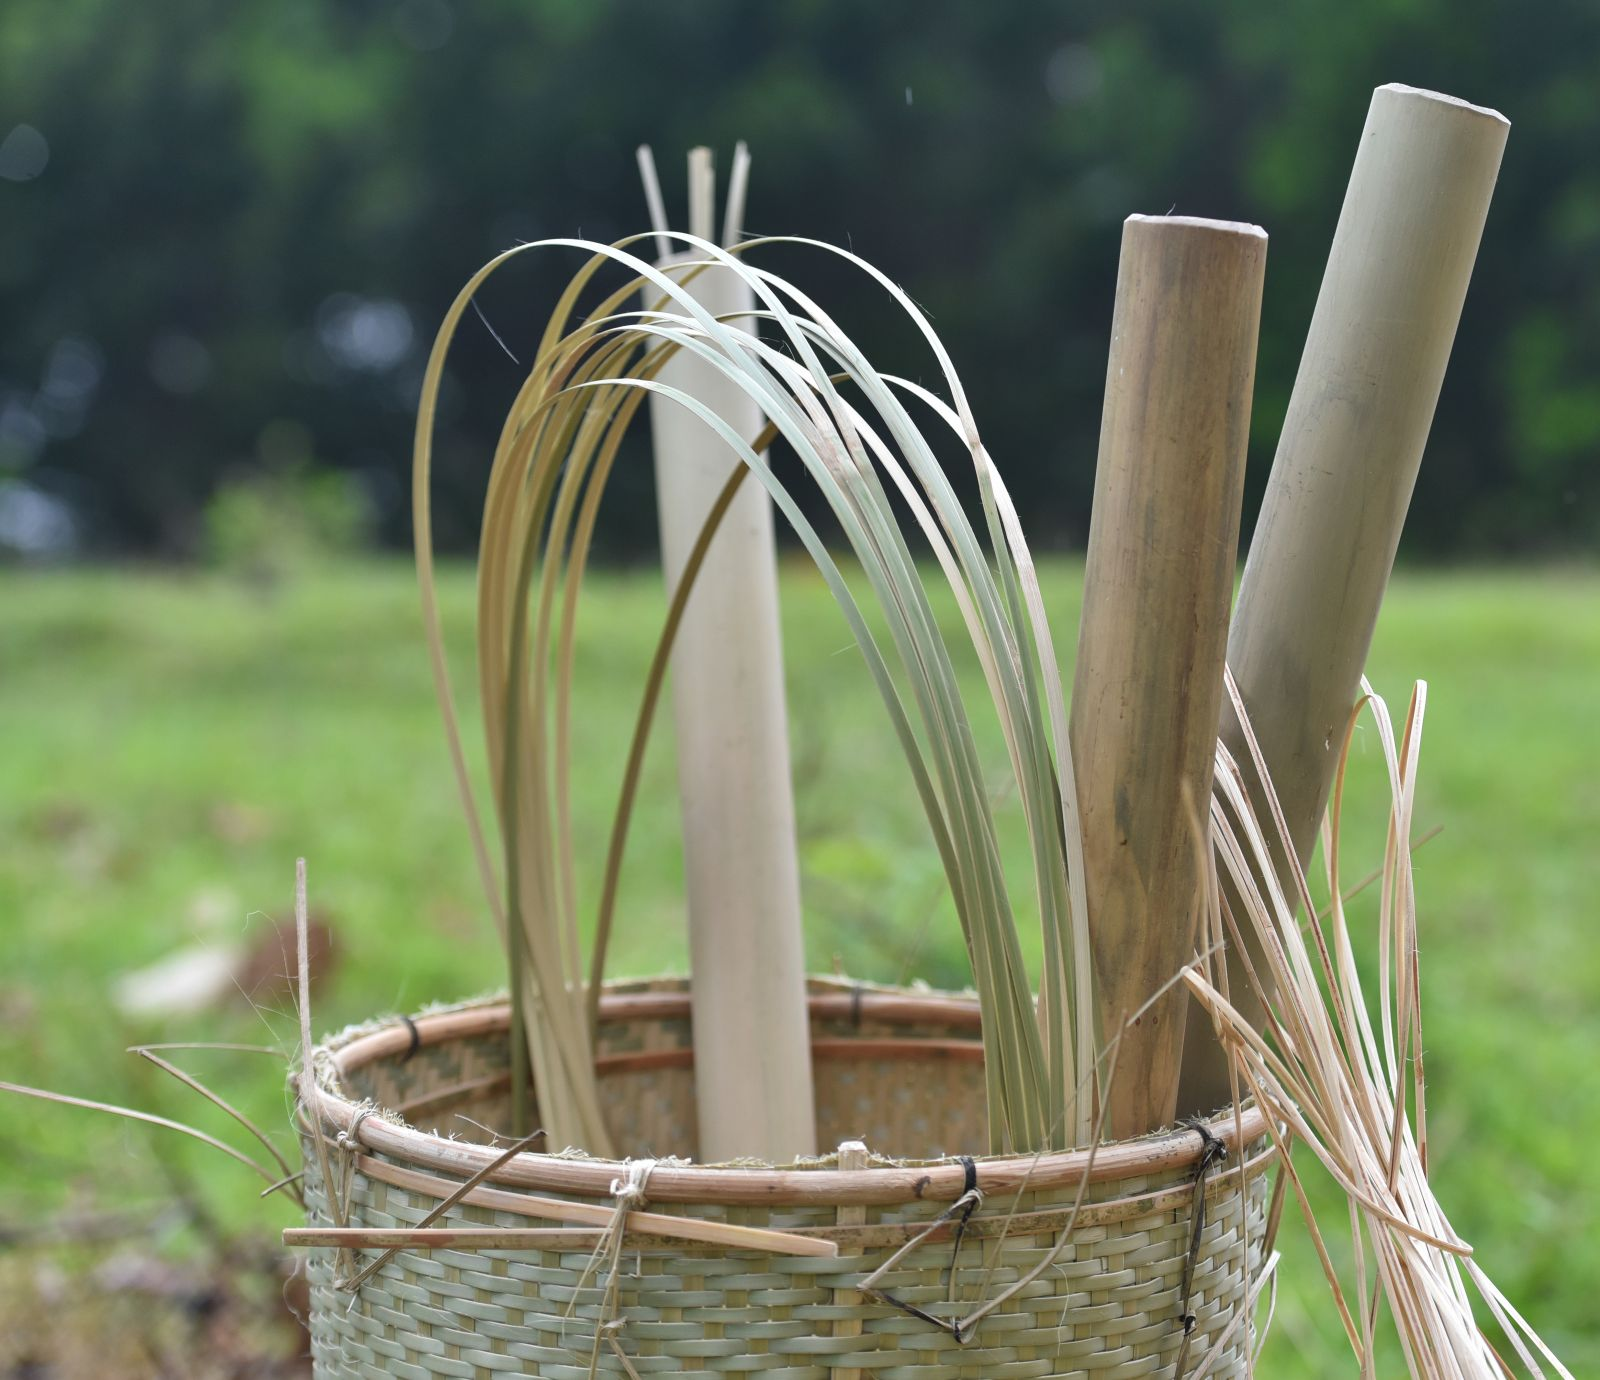 Rattan is the material that makes up strong baskets